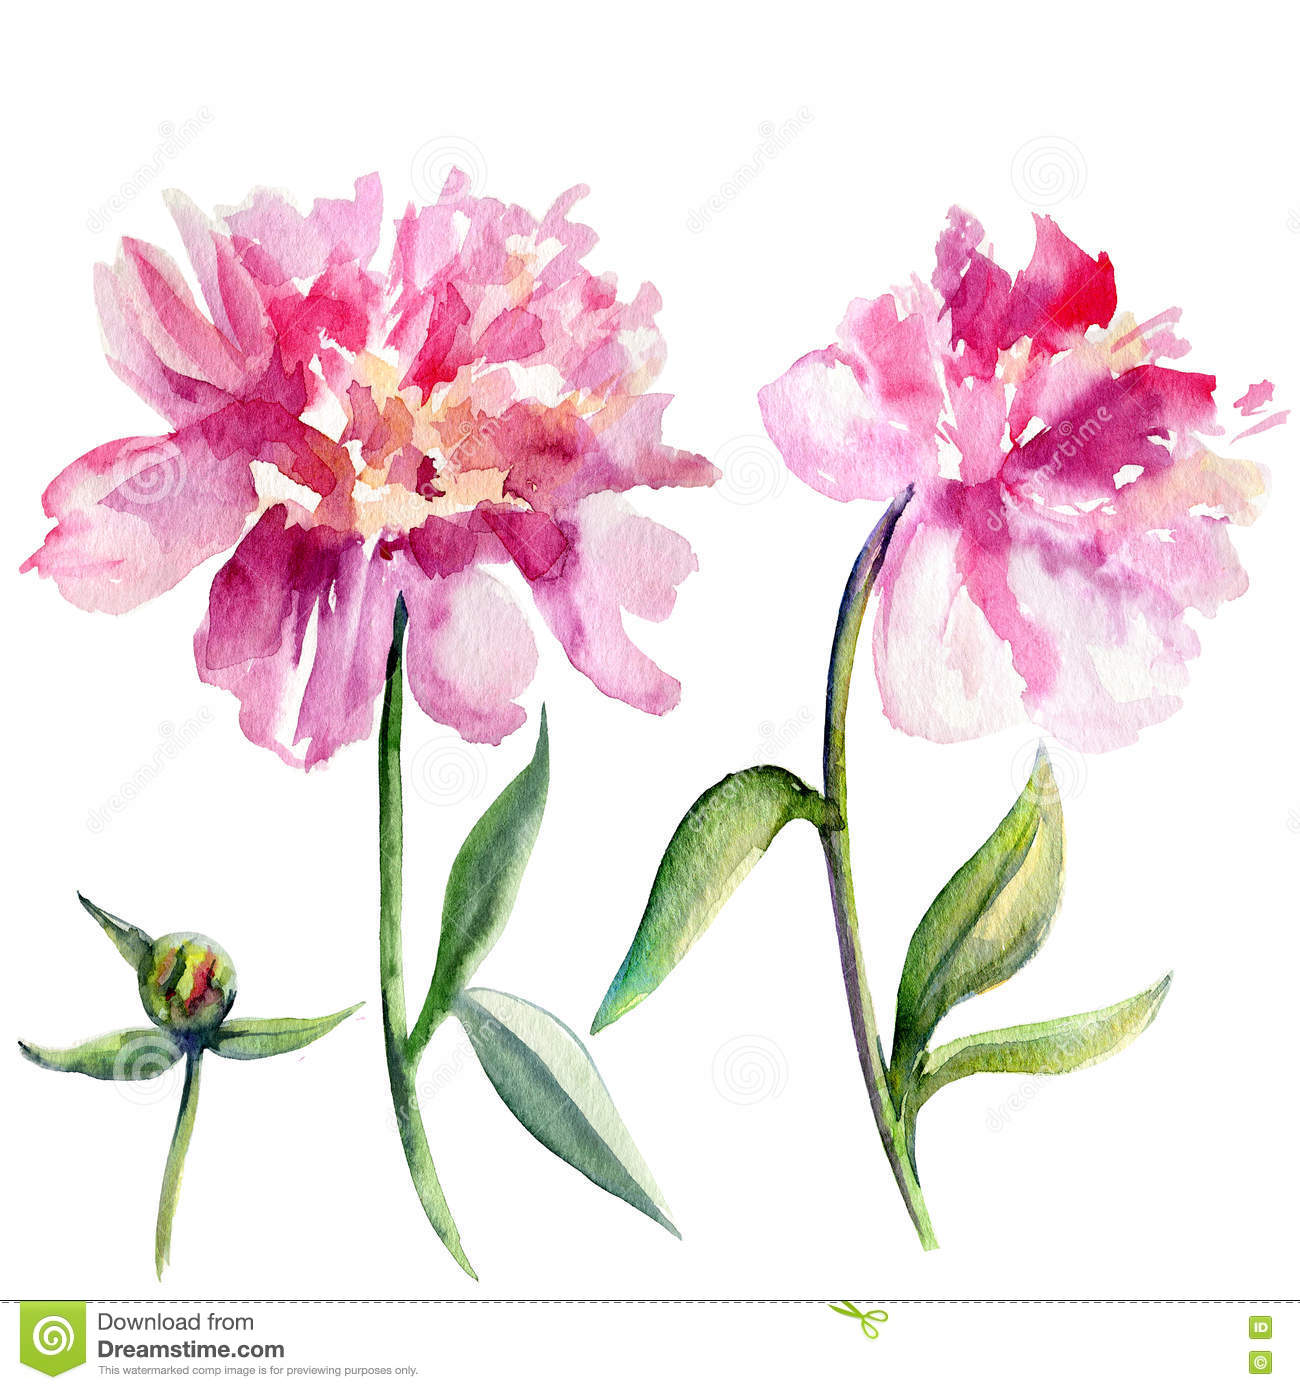 peony flower isolated watercolor illustration royalty beauty salon clip art images beauty salon clip art images